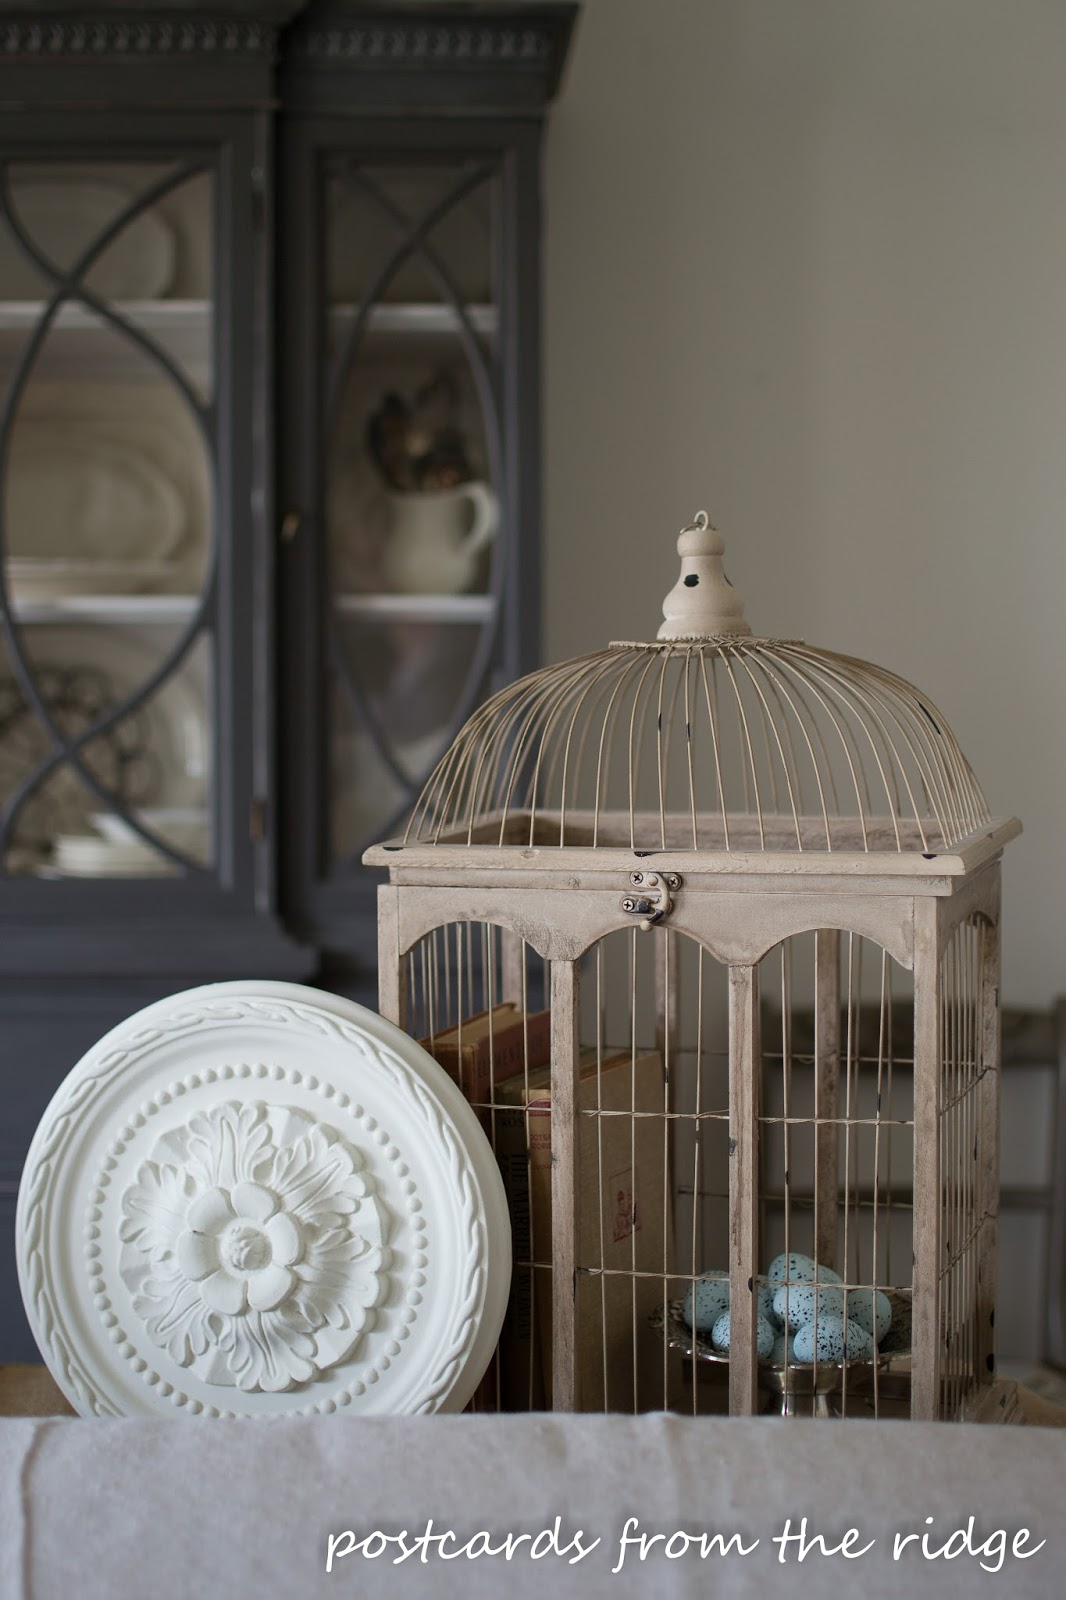 ceramic bird eggs in a bird cage